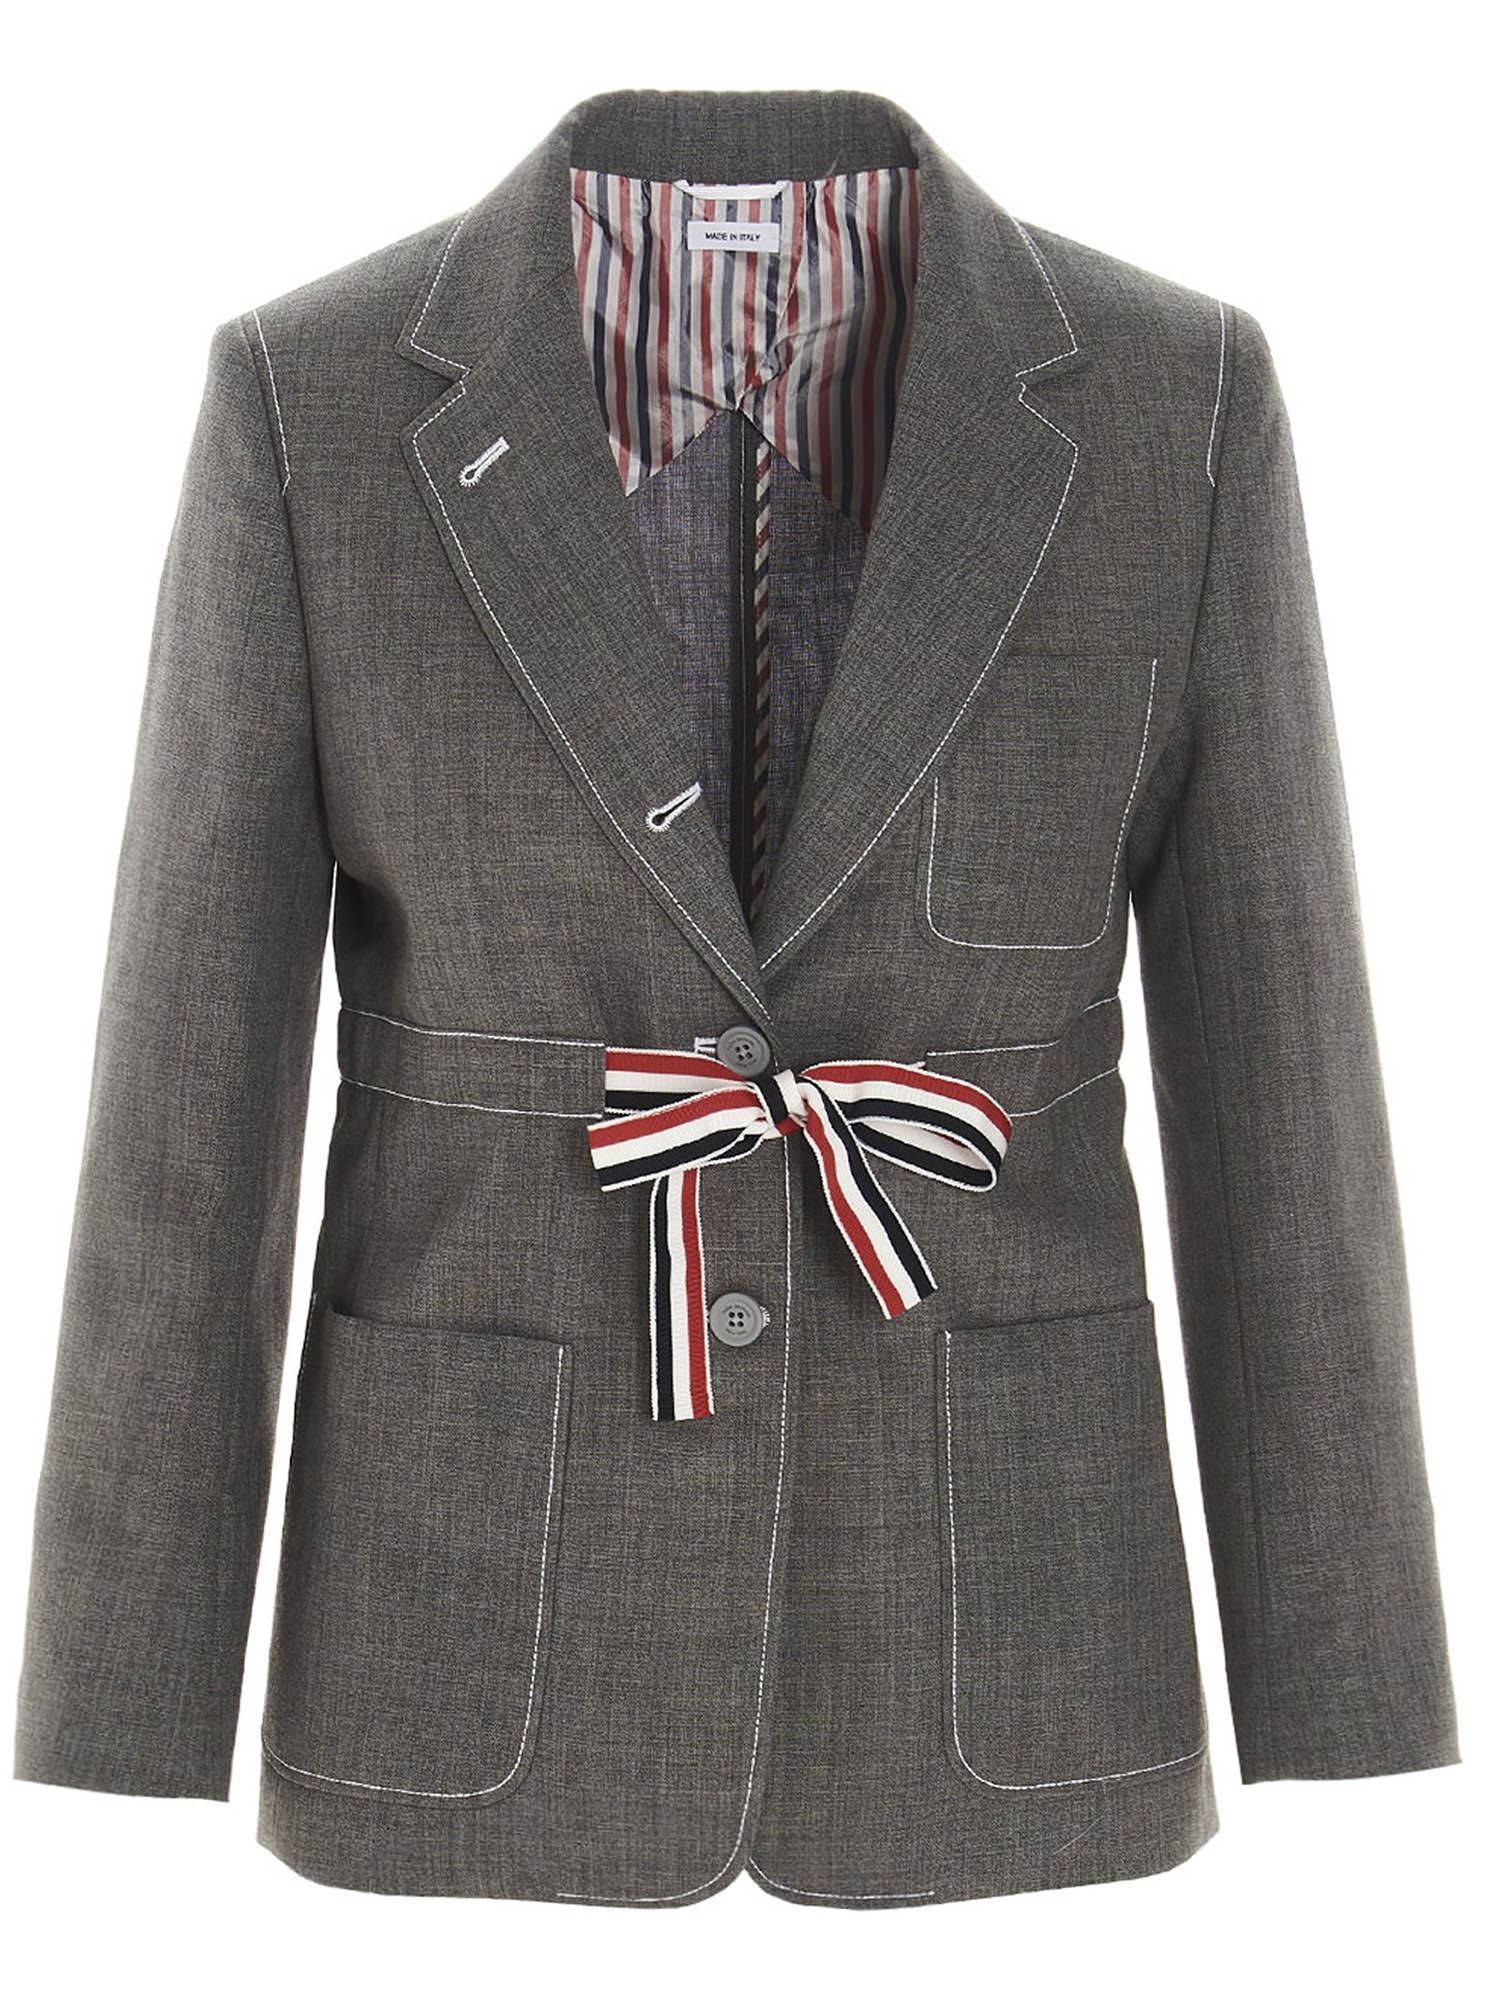 Thom Browne SINGLE BREASTED BLAZER IN GREY